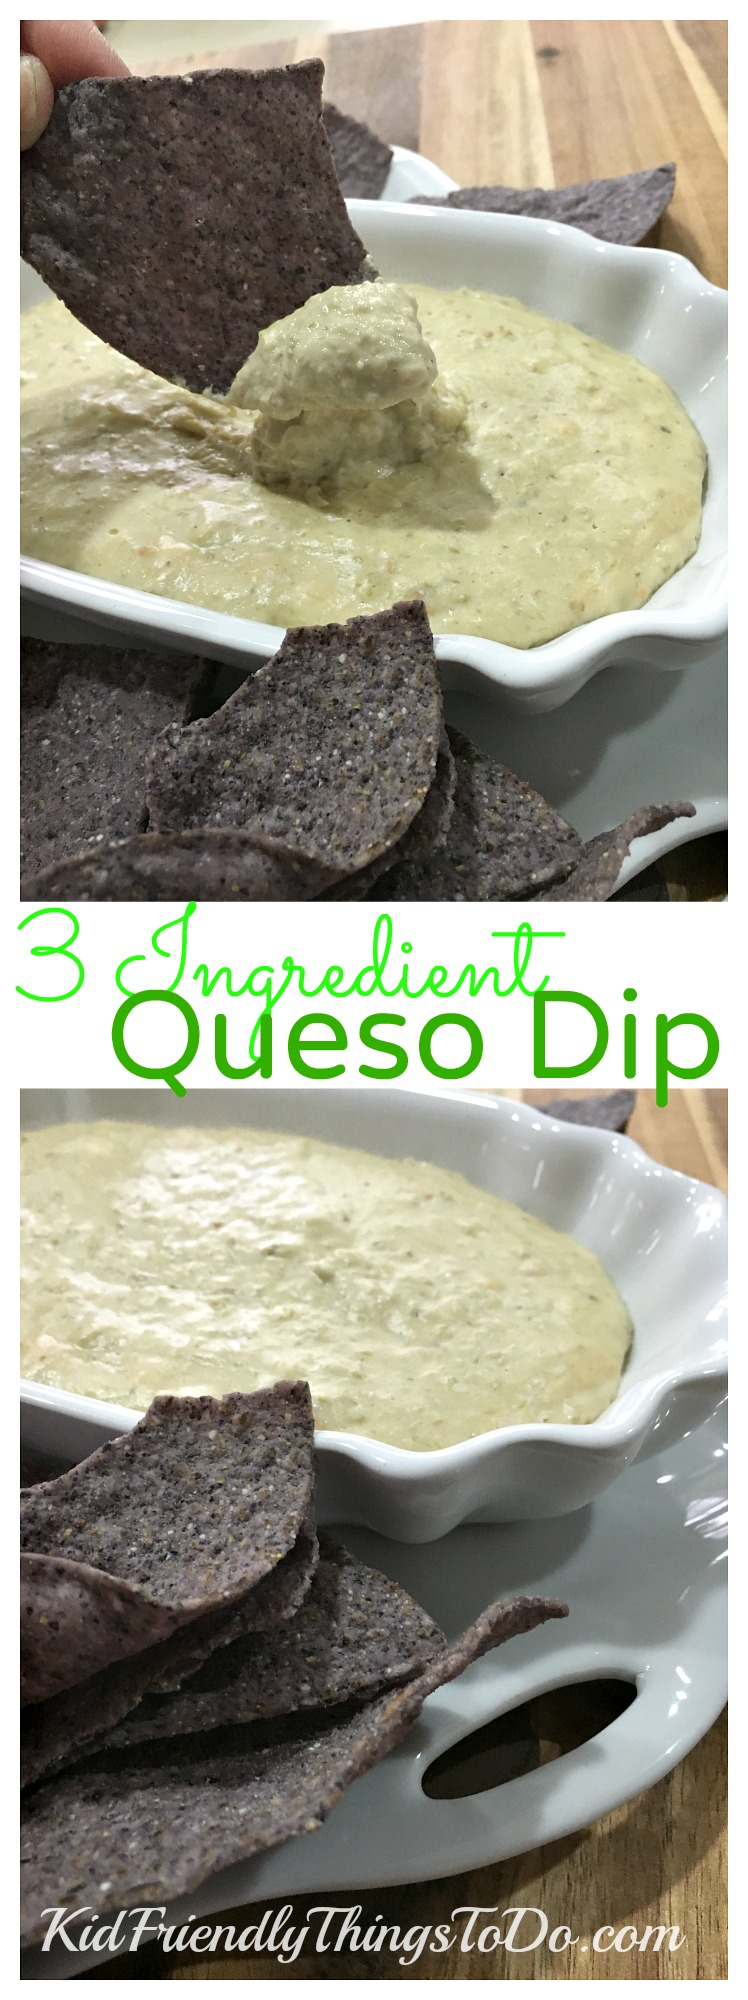 Three Ingredient Easy White Queso Dip  for the crock pot (slow cooker) or stove top - KidFriendlyThingsToDo.comThree Ingredient Easy White Queso Dip  for the crock pot (slow cooker) or stove top - KidFriendlyThingsToDo.com